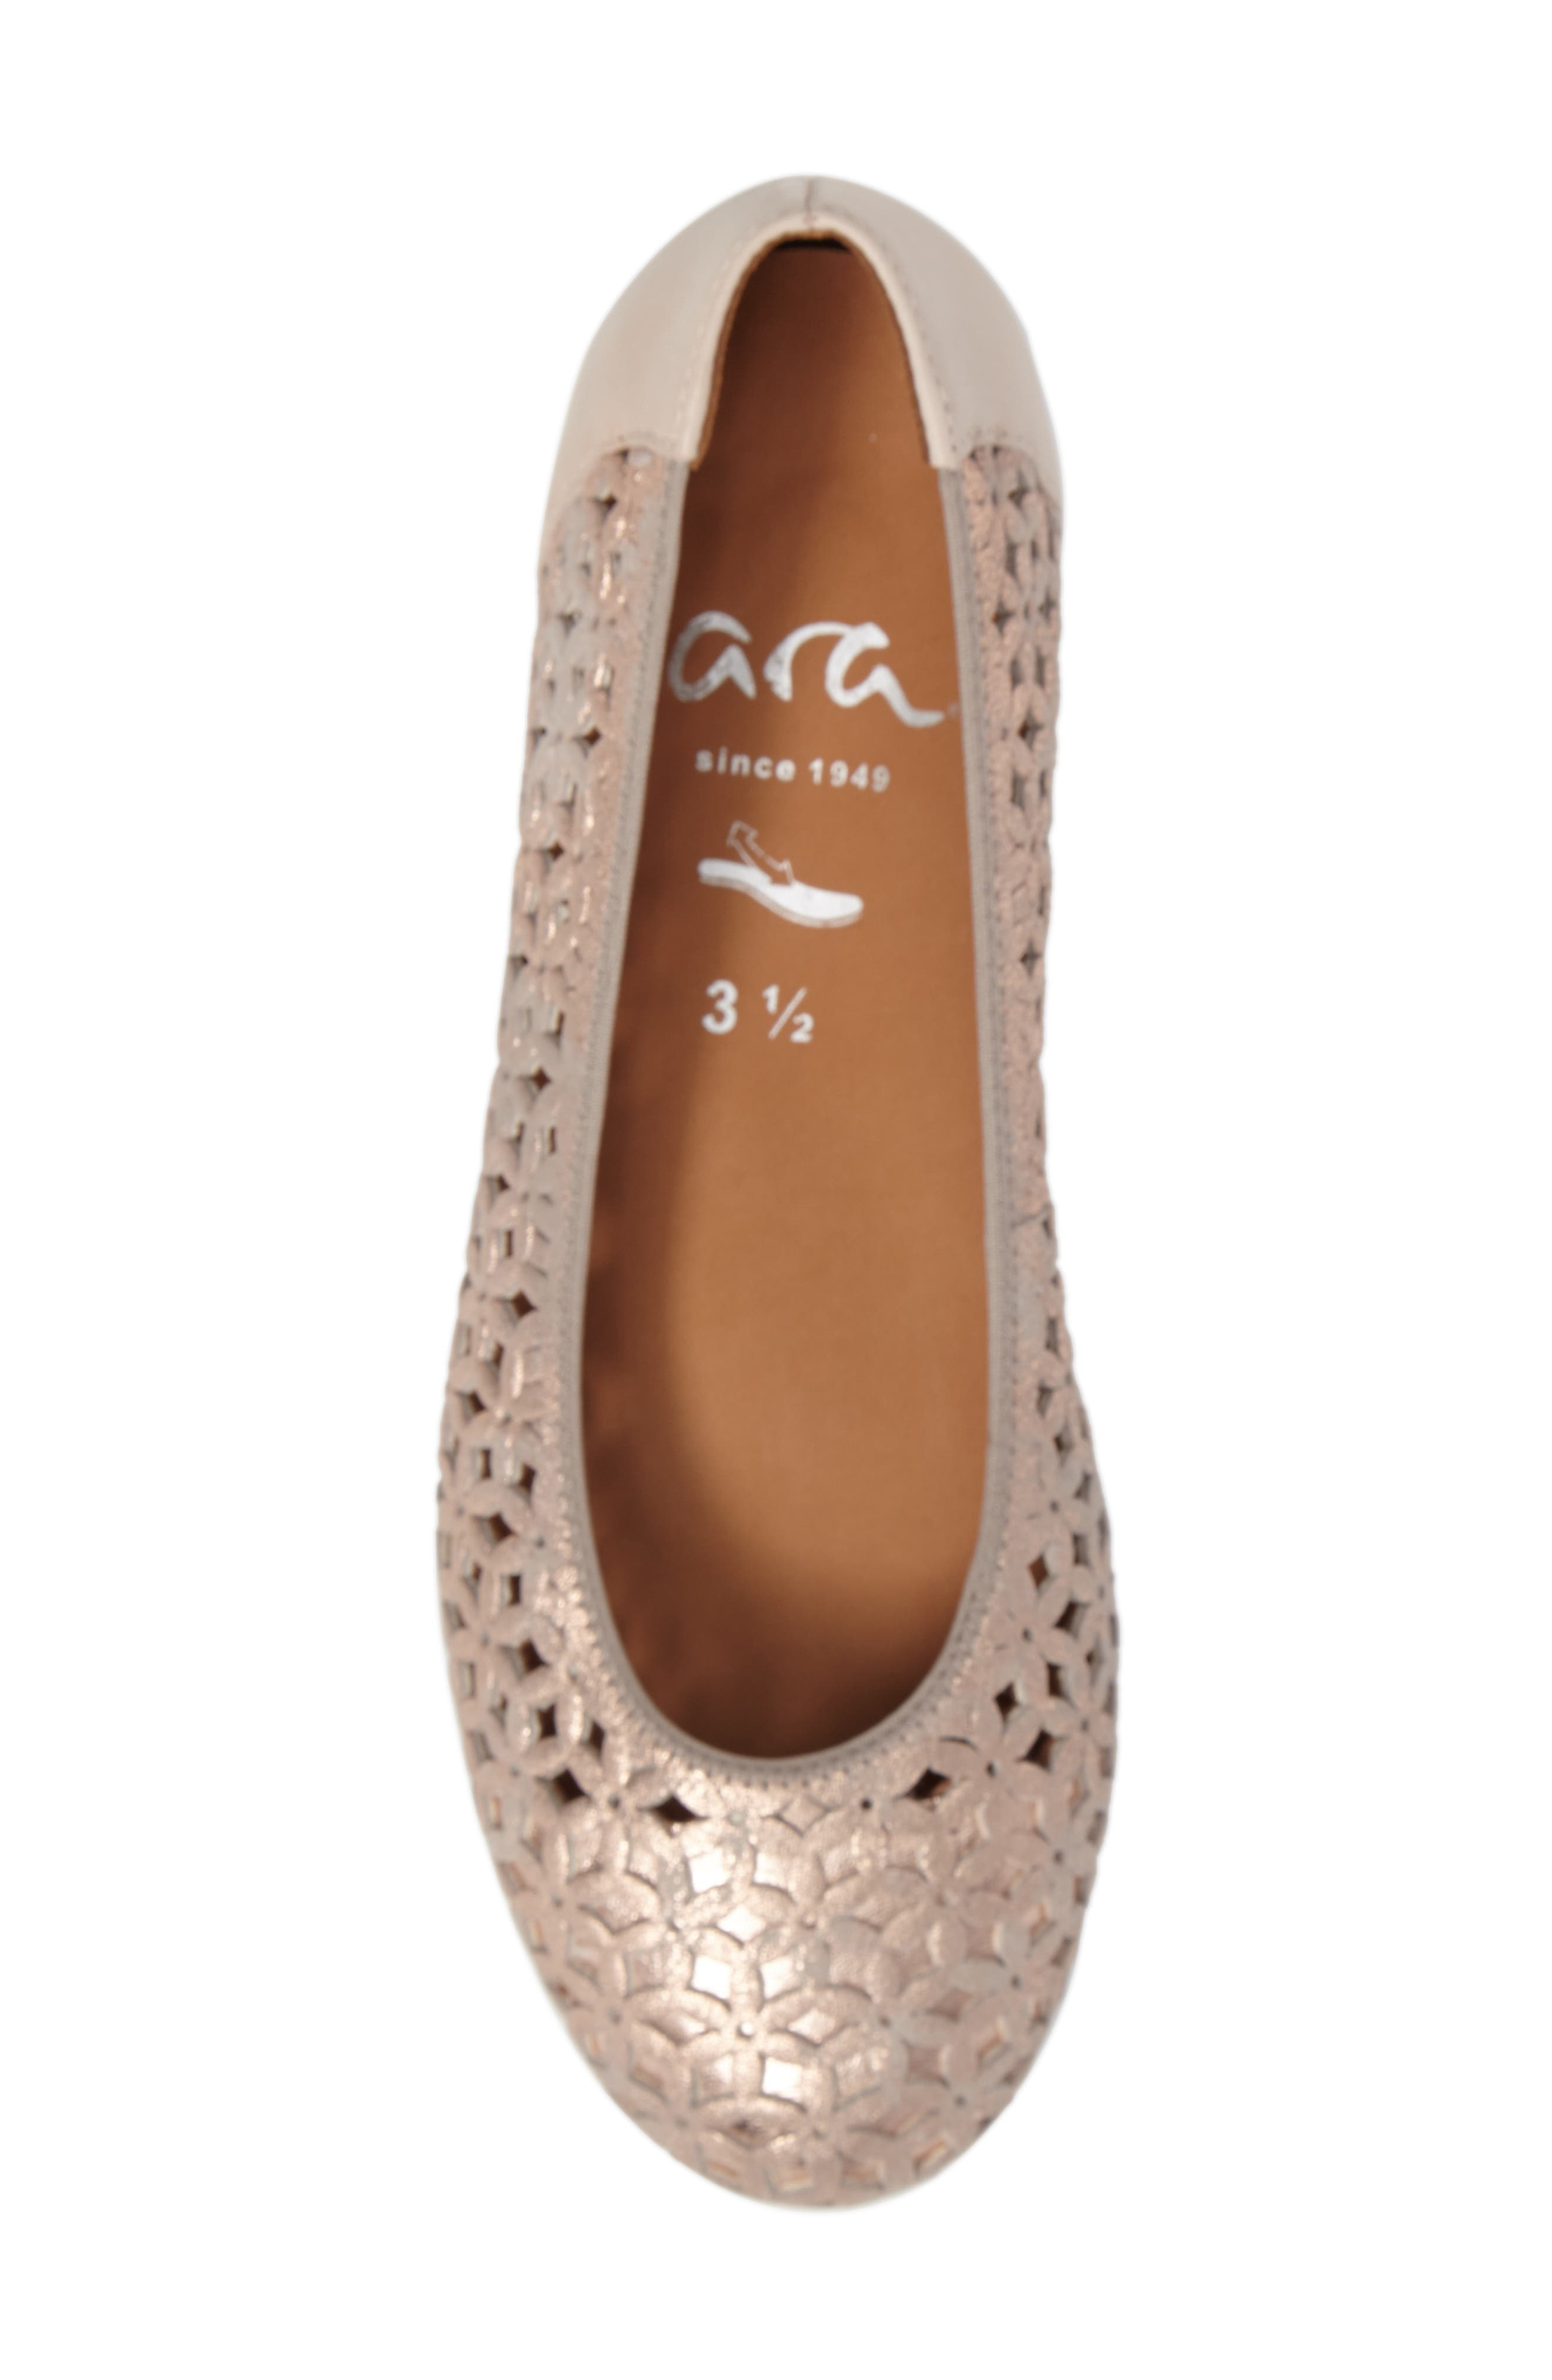 Stephanie Perforated Ballet Flat,                             Alternate thumbnail 5, color,                             Rose Gold Leather